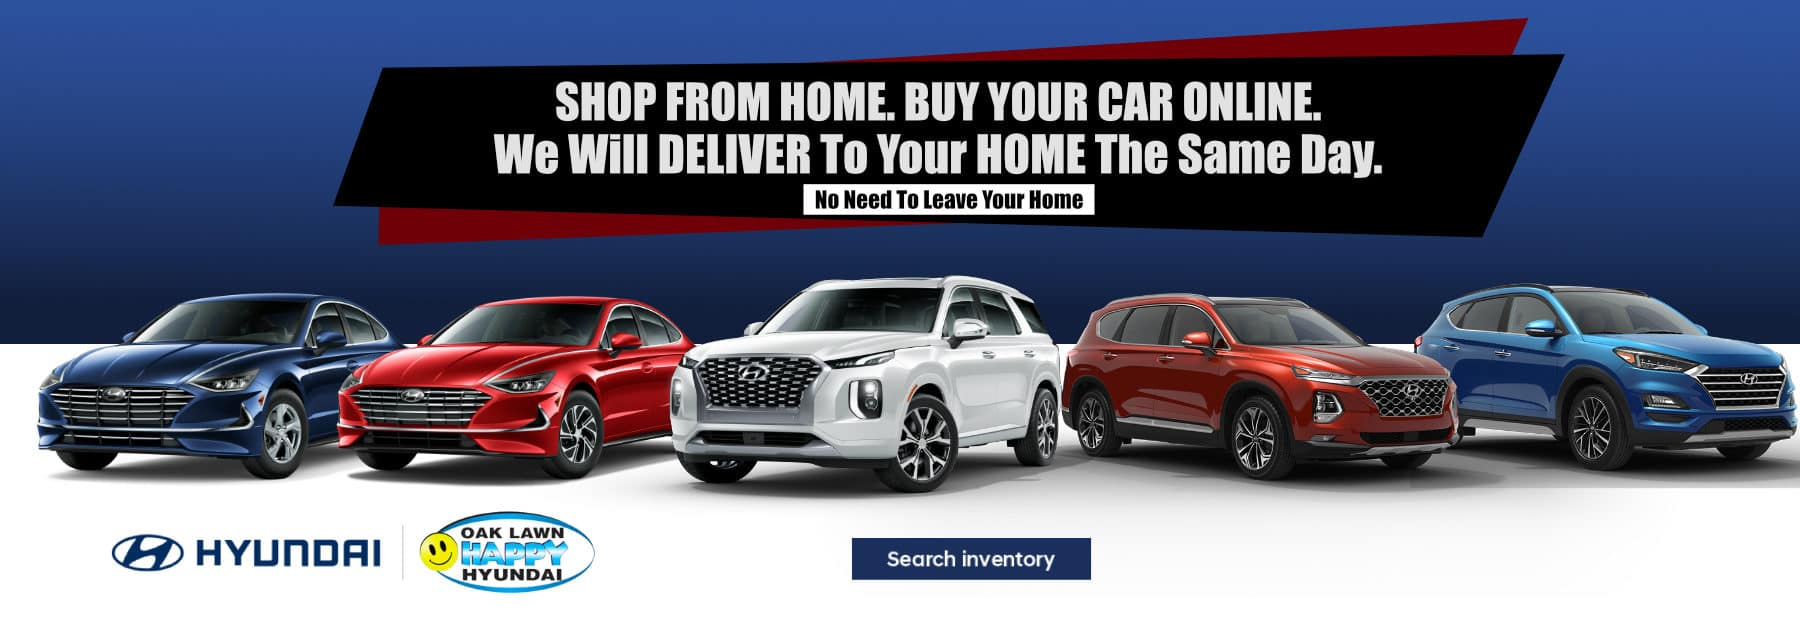 November-2020 Shop From Home_Happy Hyundai